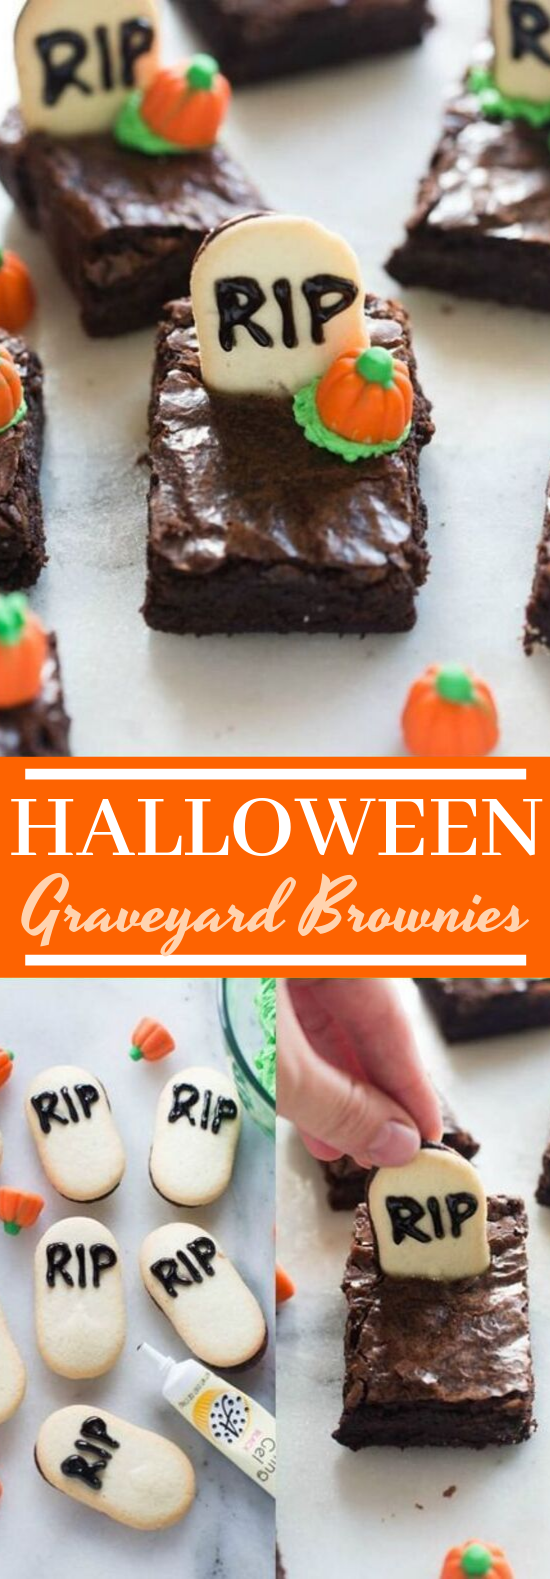 Halloween Graveyard Brownies #desserts #brownies